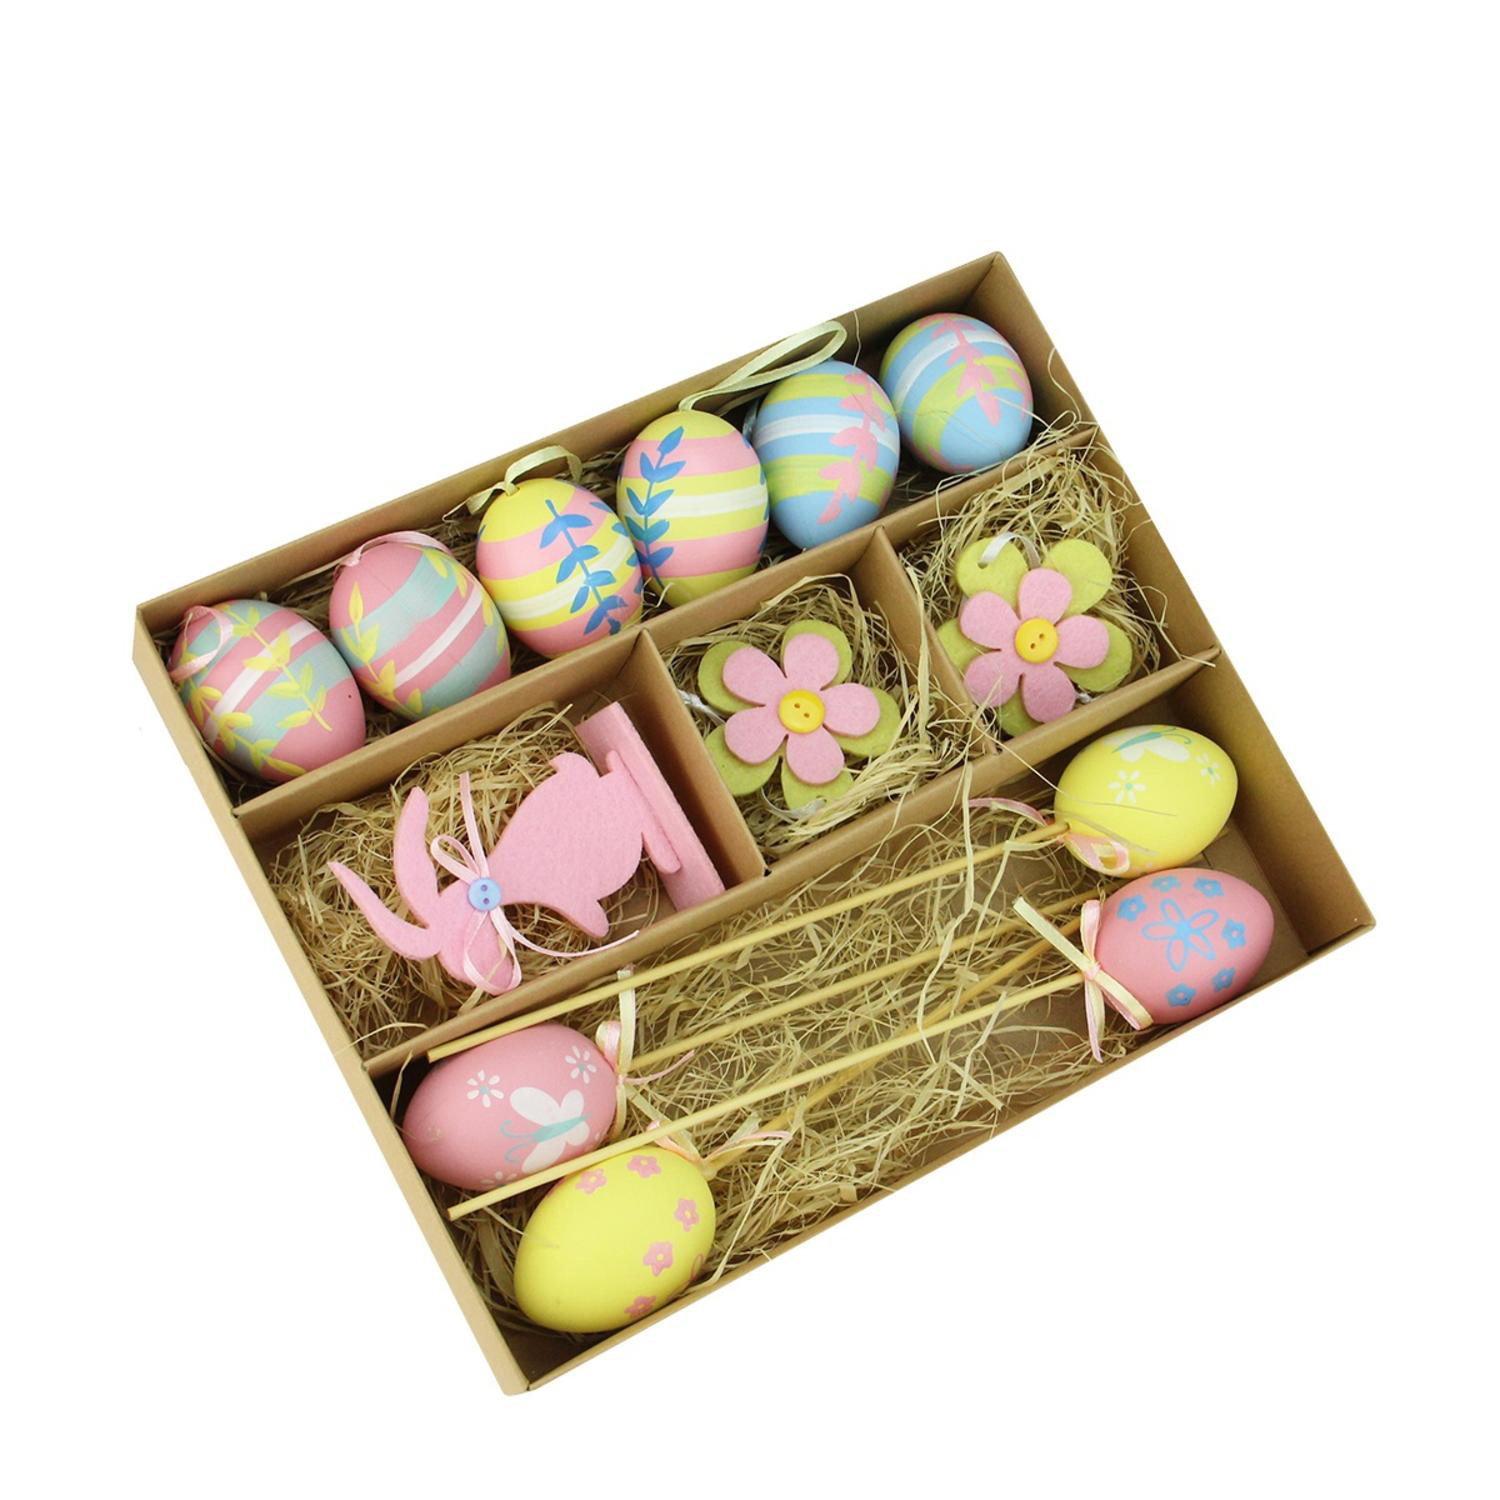 Pastel Pink, Blue & Yellow Easter Egg, Flower & Bunny Decorations